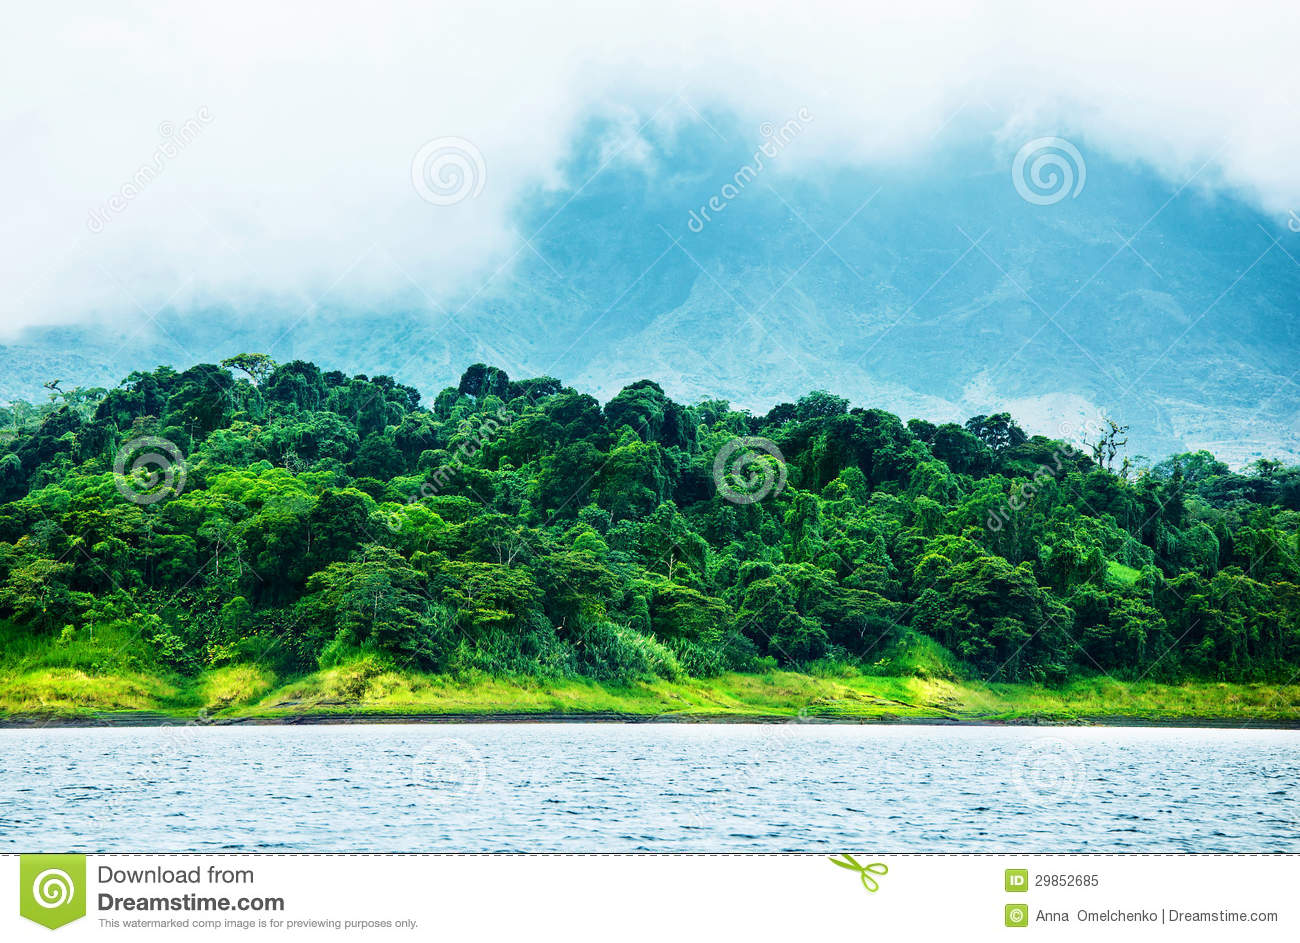 Nature Images 2mb: Beautiful Landscape Stock Image. Image Of Panoramic